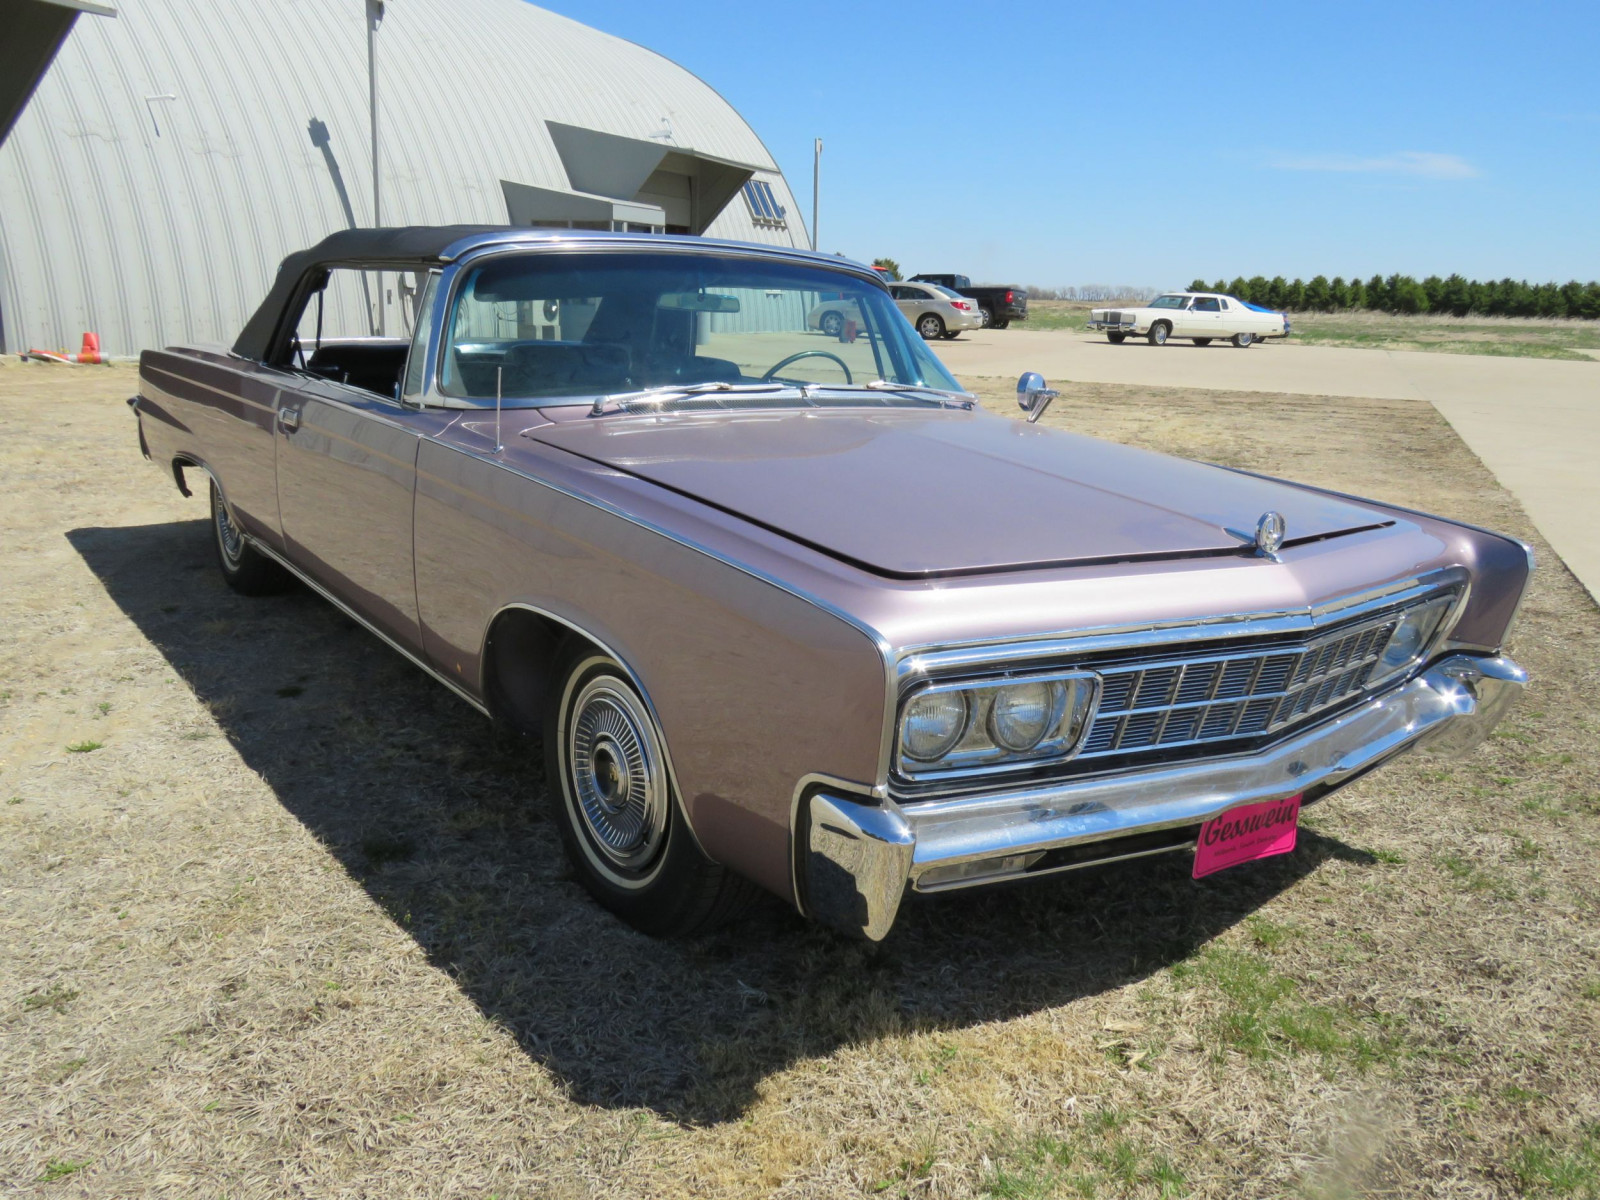 1966 Chrysler Imperial Crown Convertible - Image 11